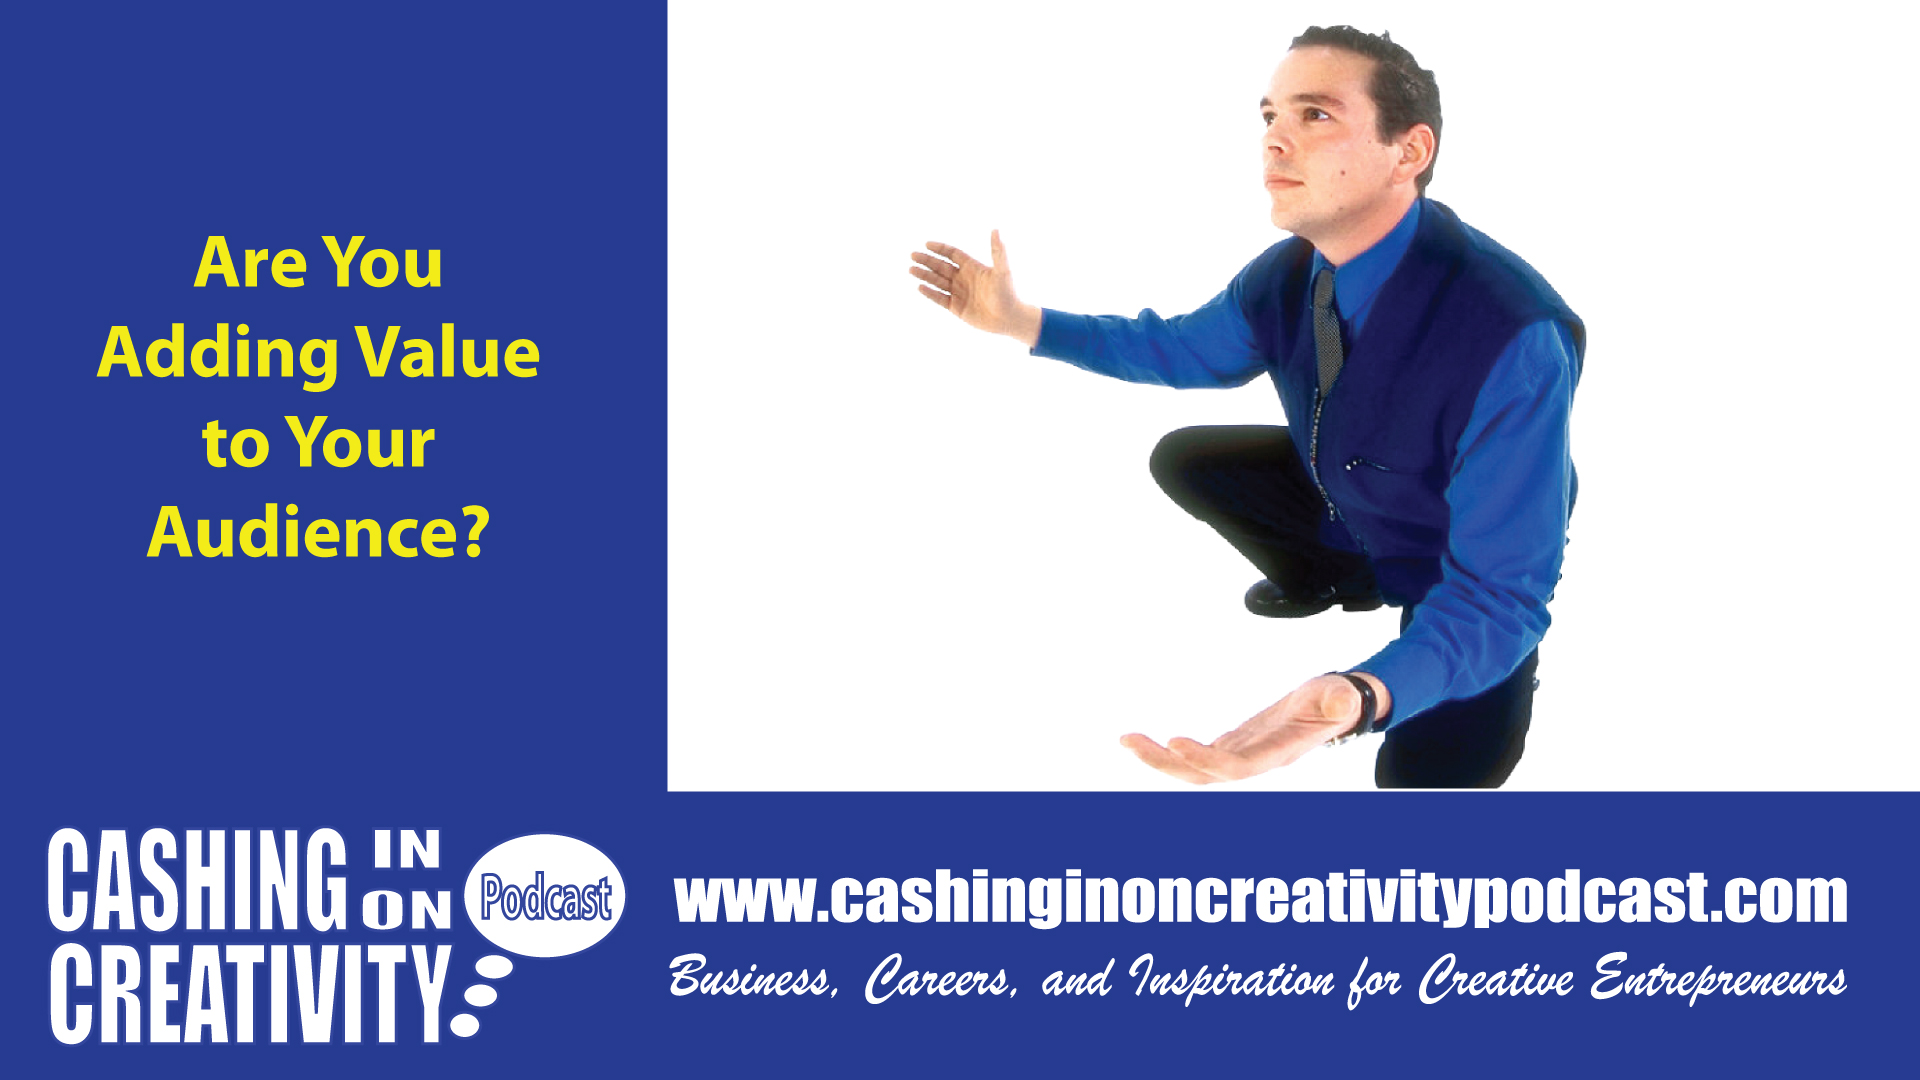 CC260 Are You Adding Value to Your Audience as a Creative Entrepreneur